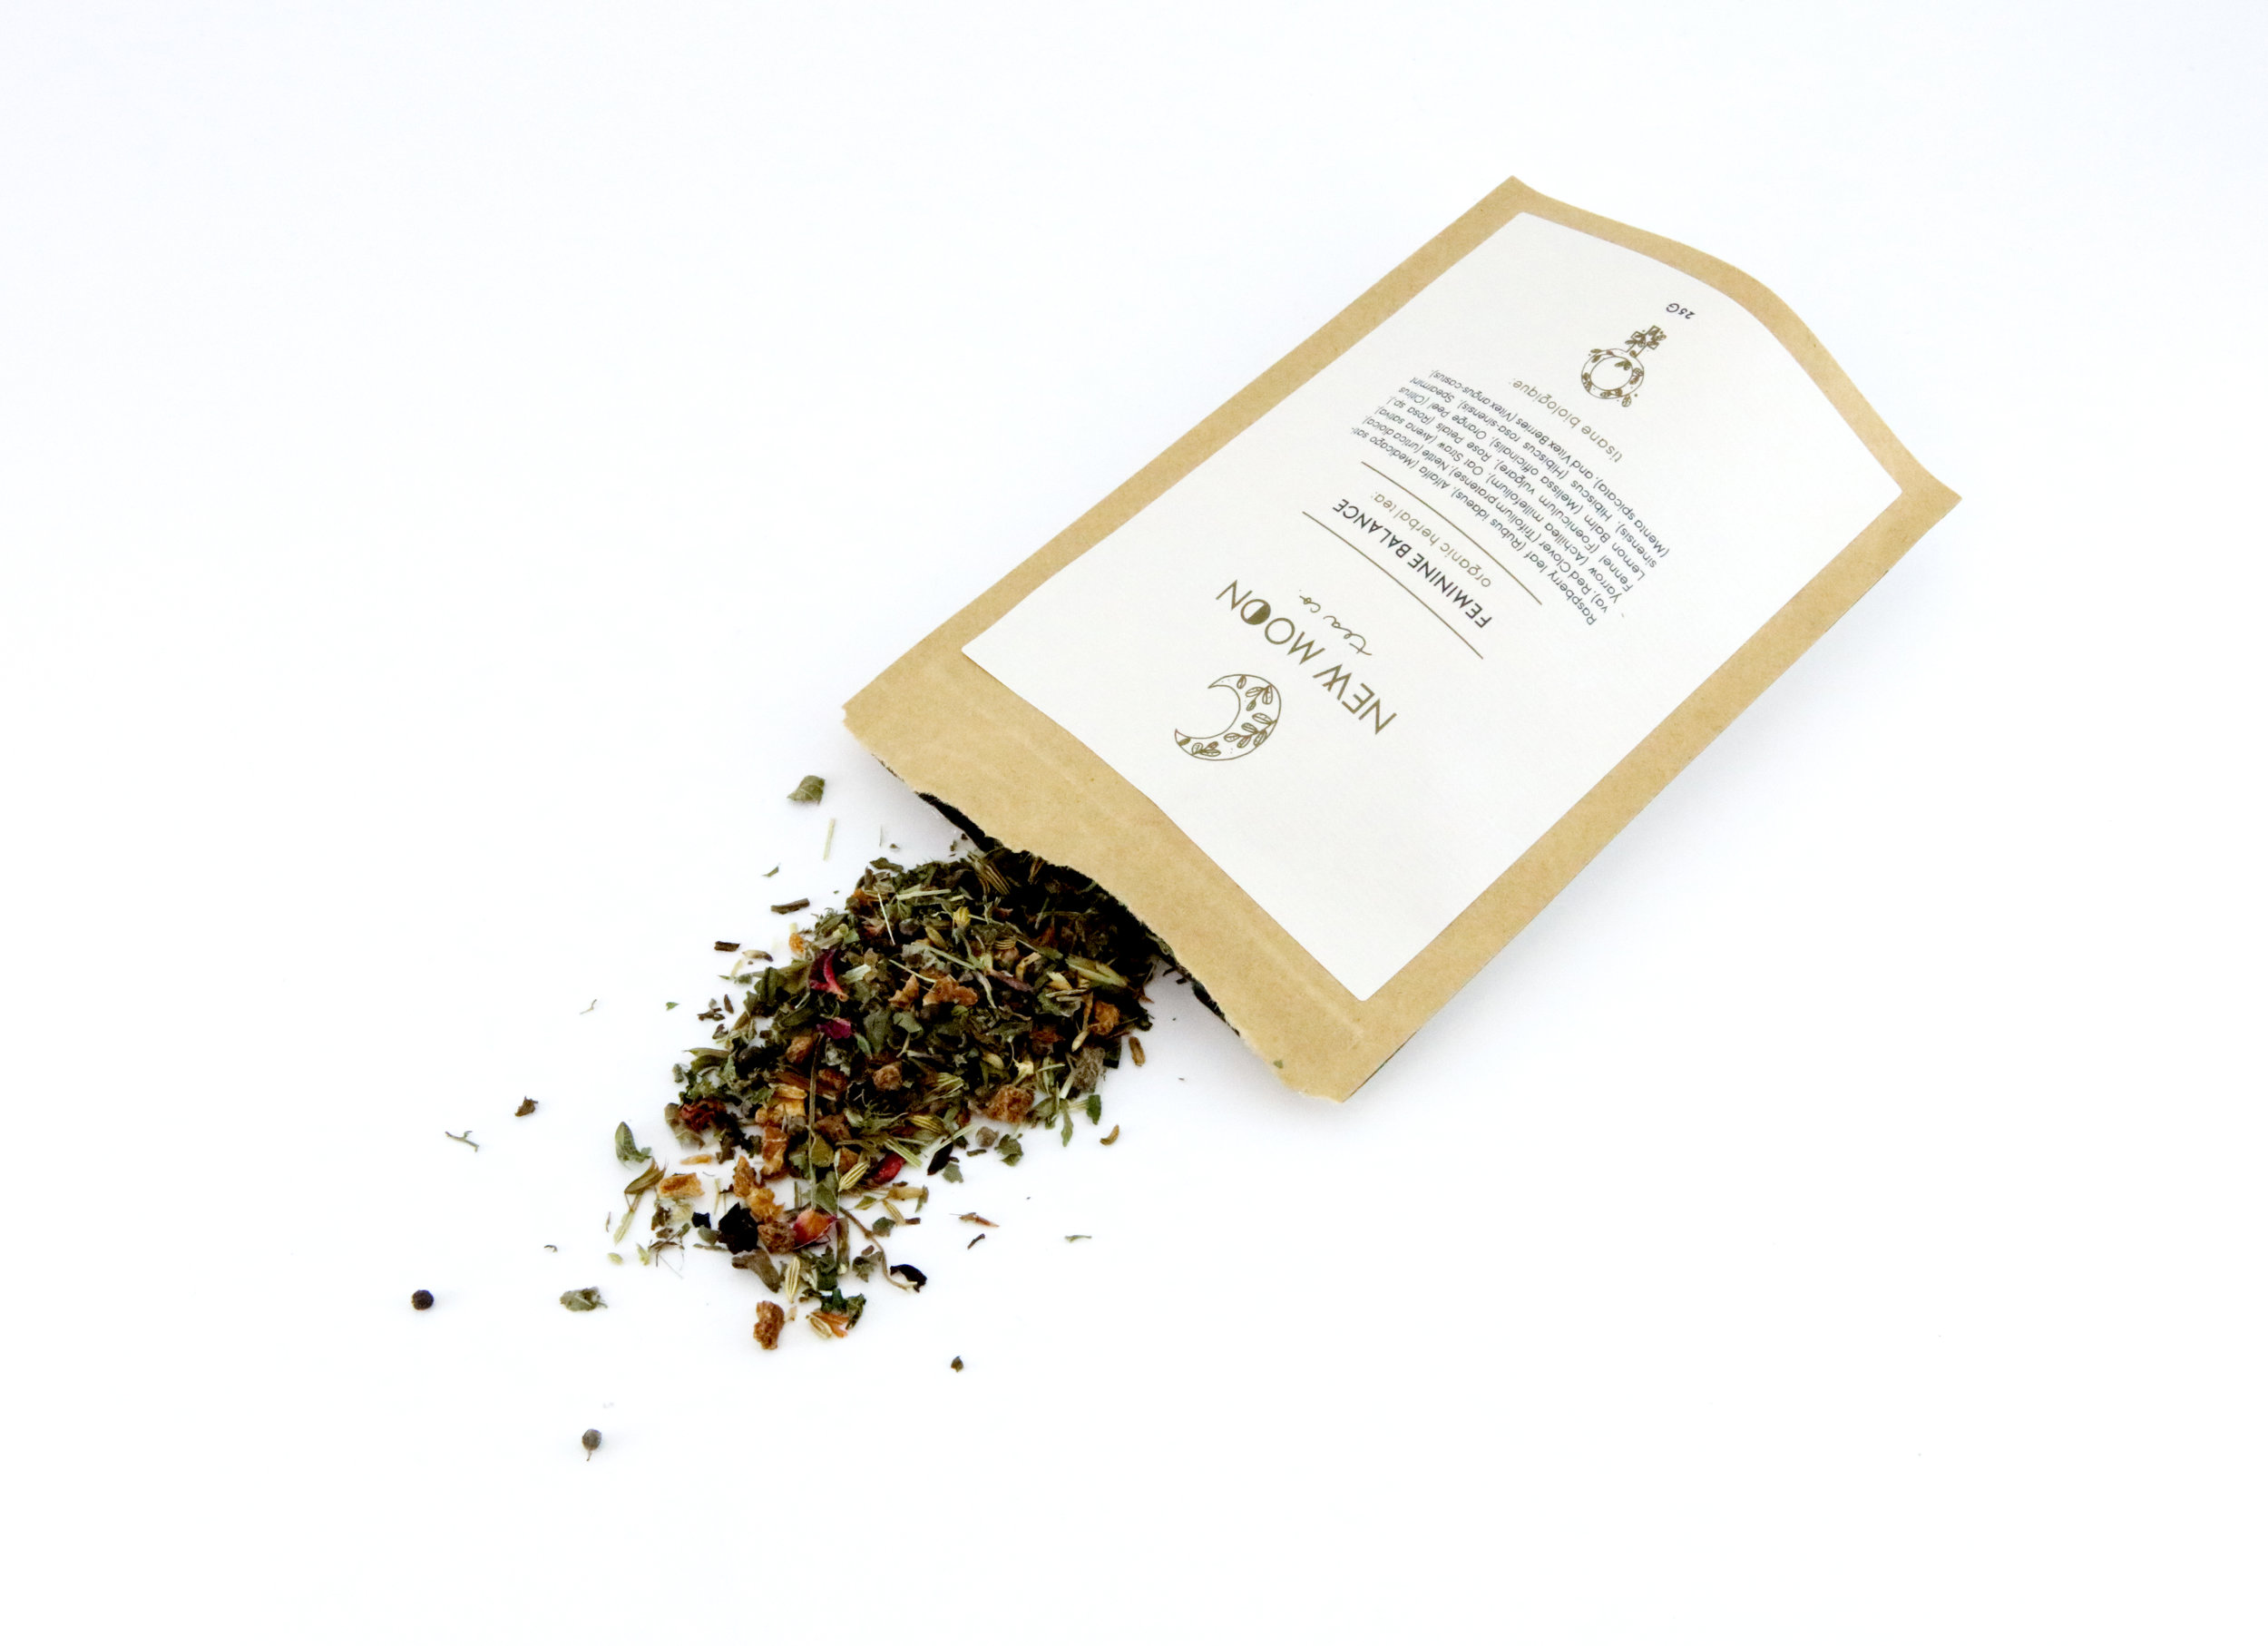 Therapeutic Item: Feminine Balance Organic Tea by New Moon   This delicious loose leaf blend harmonizes the body and relieves stress on hormones. Handcrafted in small batches, Feminine Balance tea is vegan, gluten-free with no caffeine. The raspberry leaf helps balance hormones, while the lemon balm eases period pain.  PMS Tea Recipe:  Add 1-1.5 tsp of tea into an infuser, and pour 8 oz of boiling water over. Make sure to cover your tea to stop nutrients from escaping in the steam. Steep for 8-10 min. Enjoy!